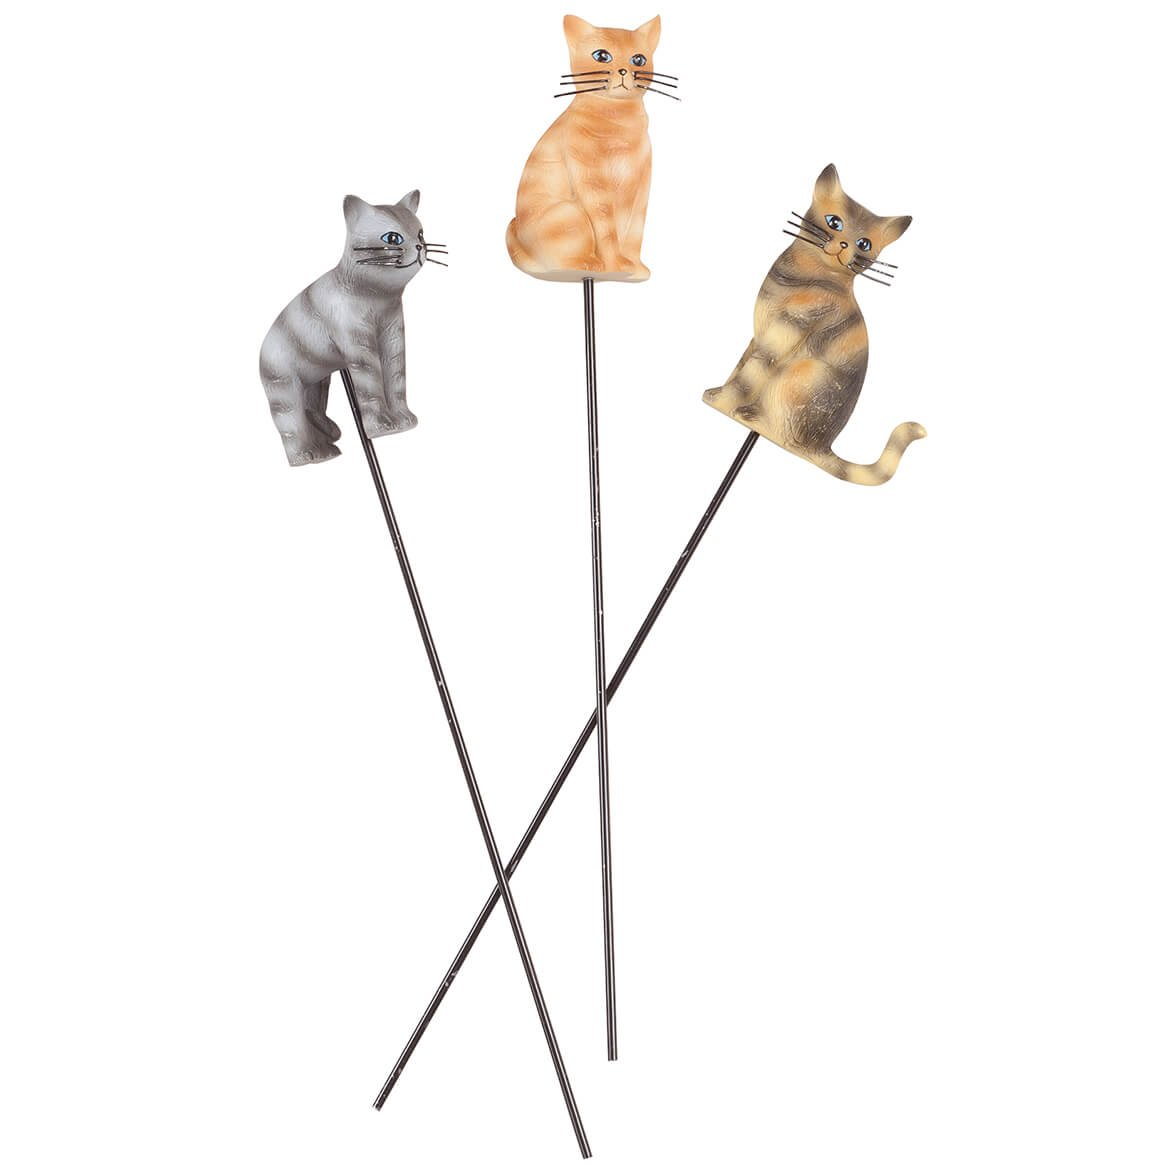 Resin Cat Planter Stakes, Set of 3 by Maple Lane CreationsTM